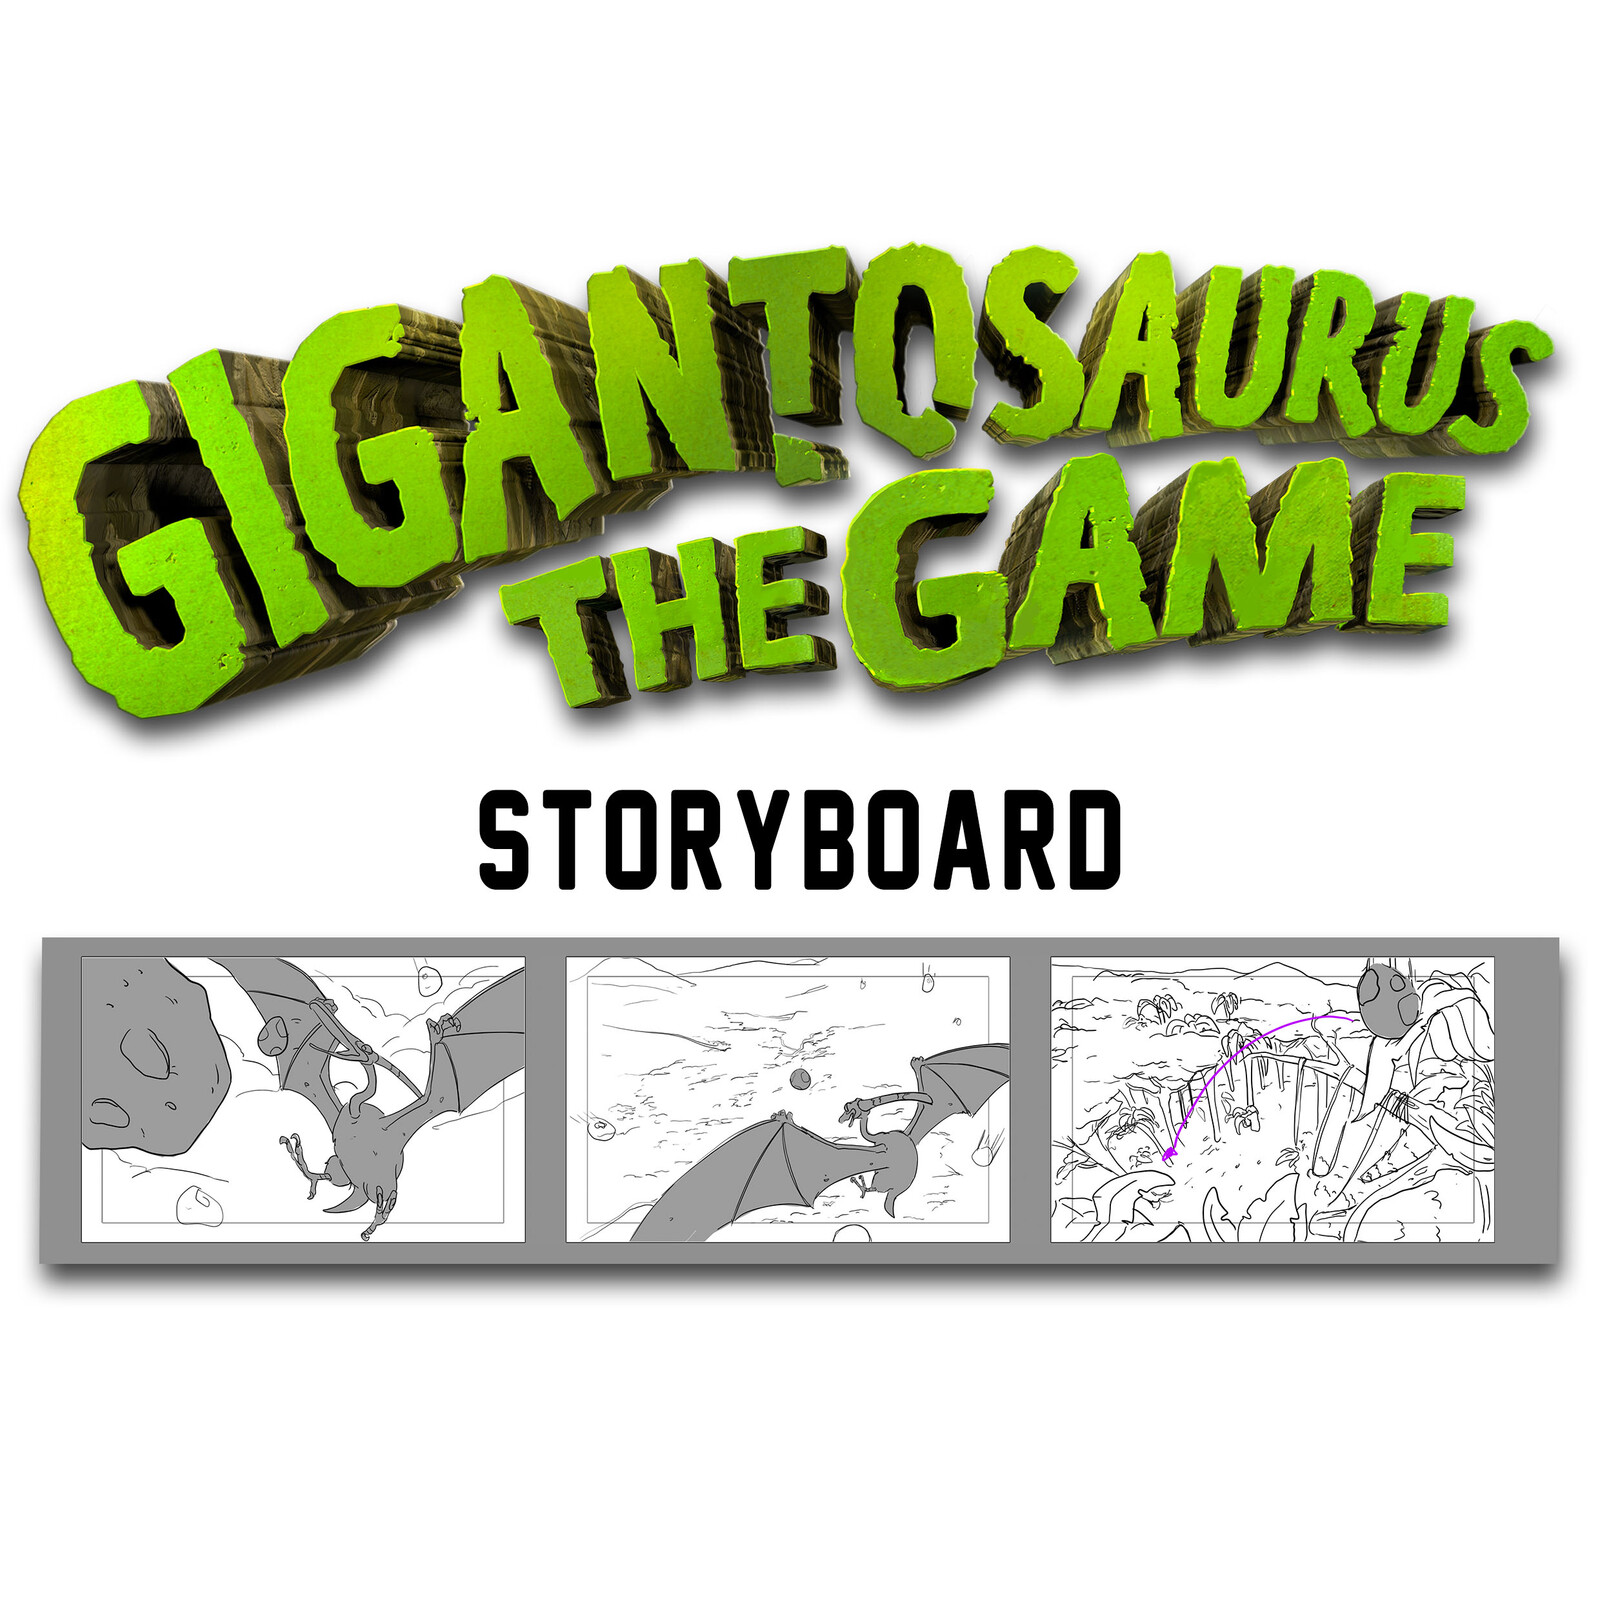 Gigantosaurus the game: Storyboard